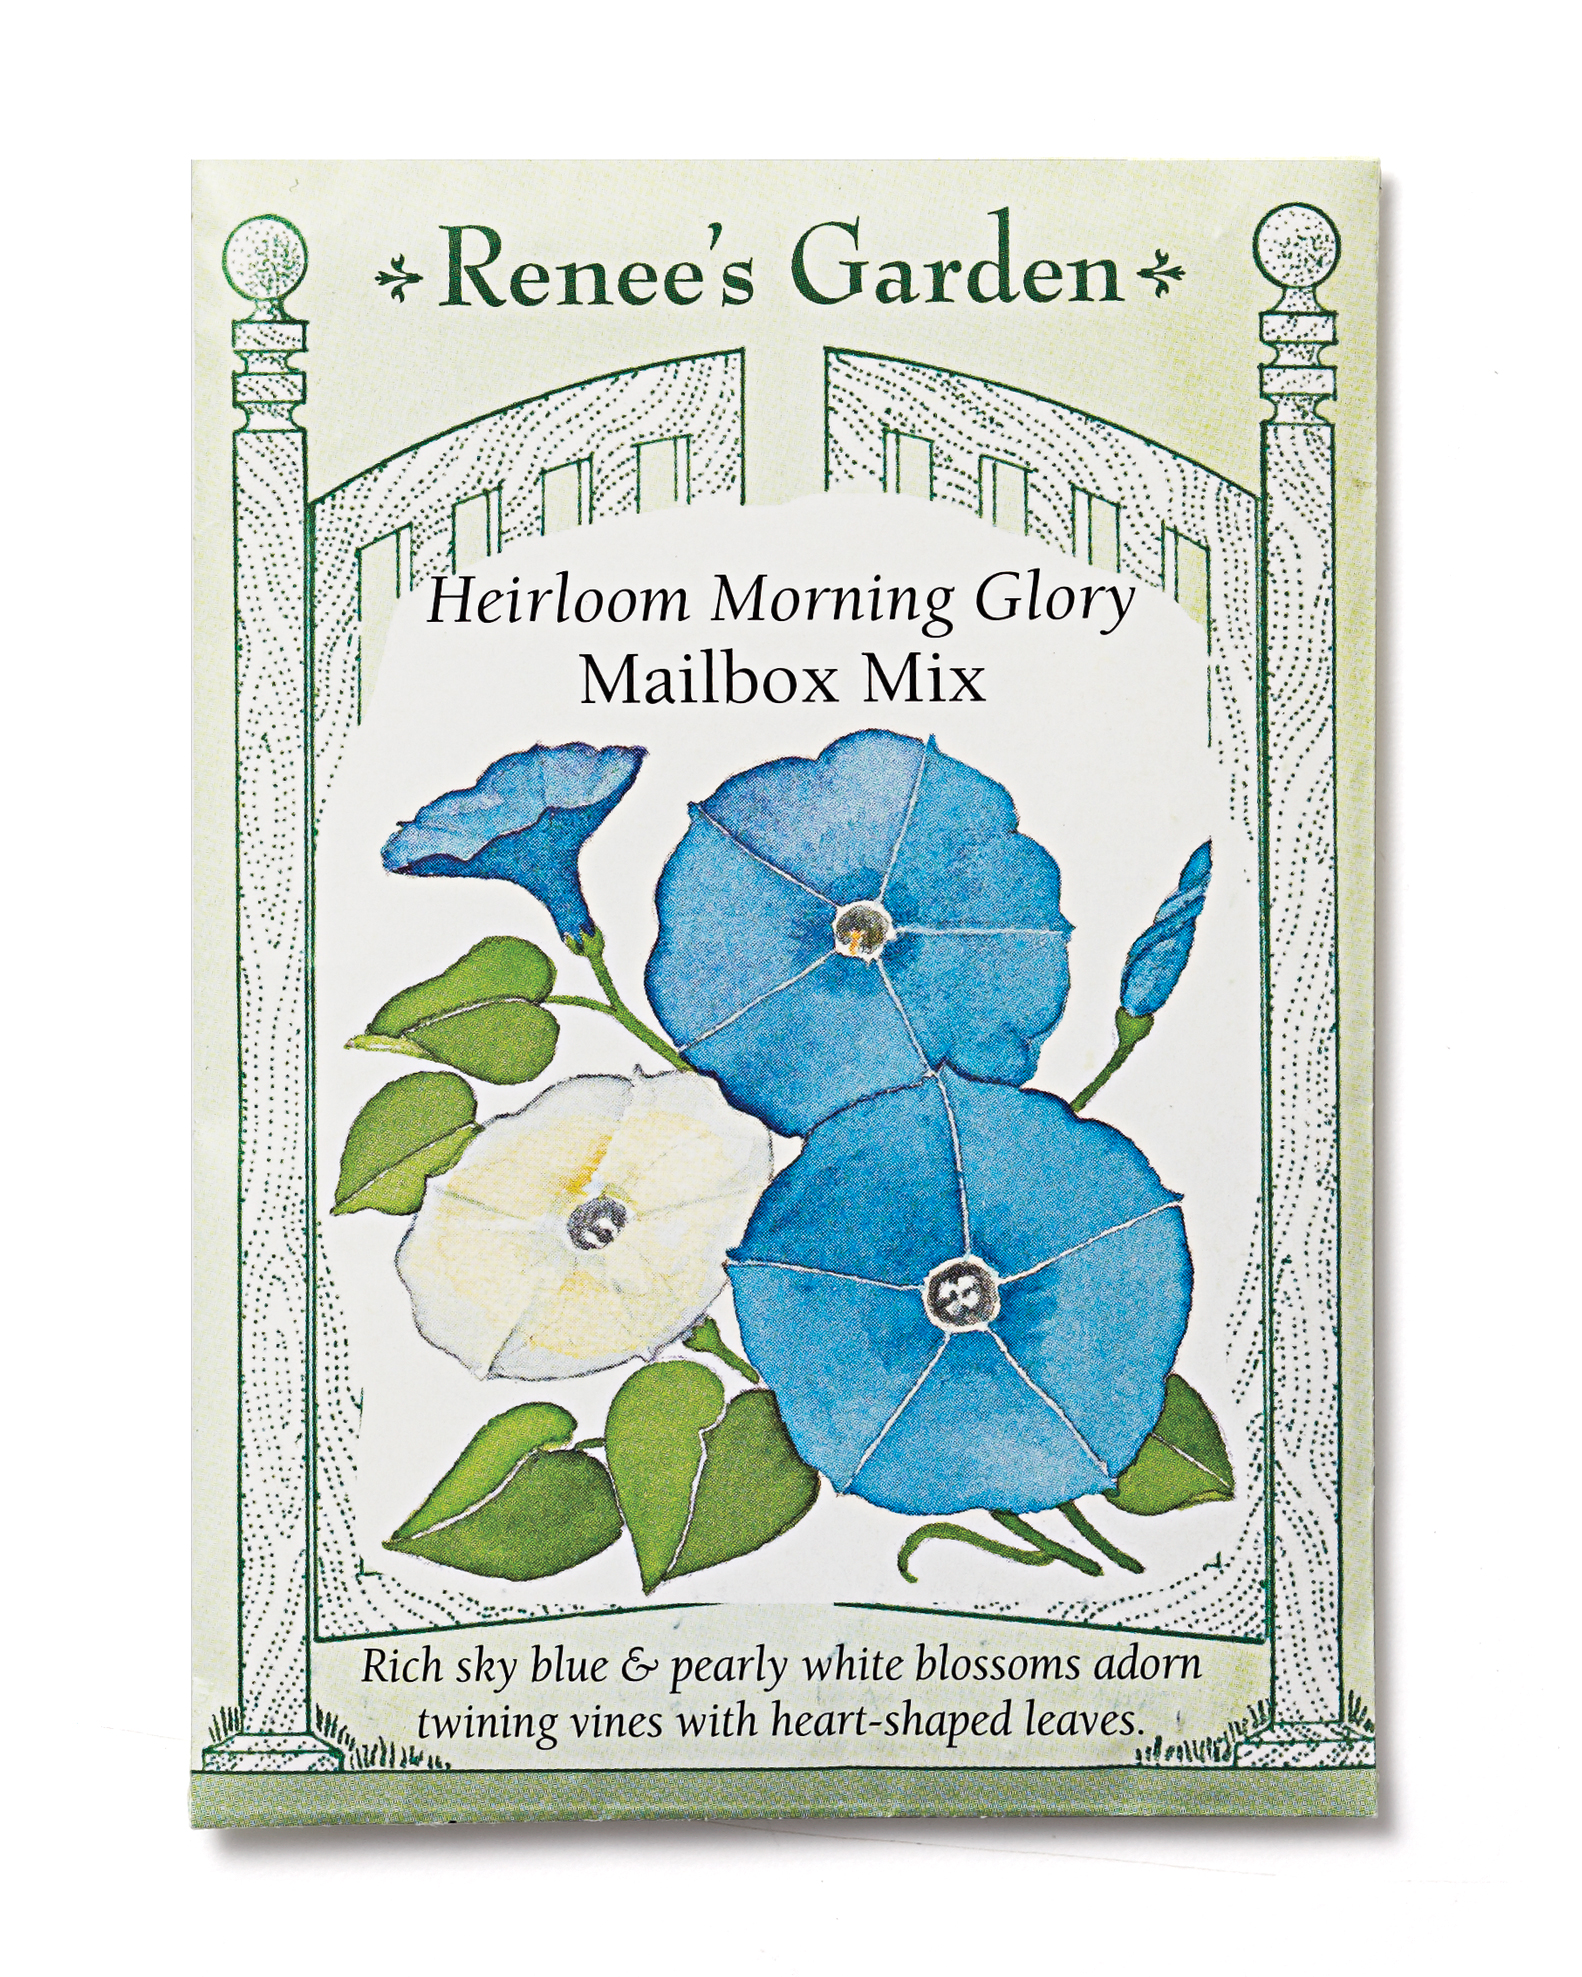 seeds-renees-038-mld110707.jpg